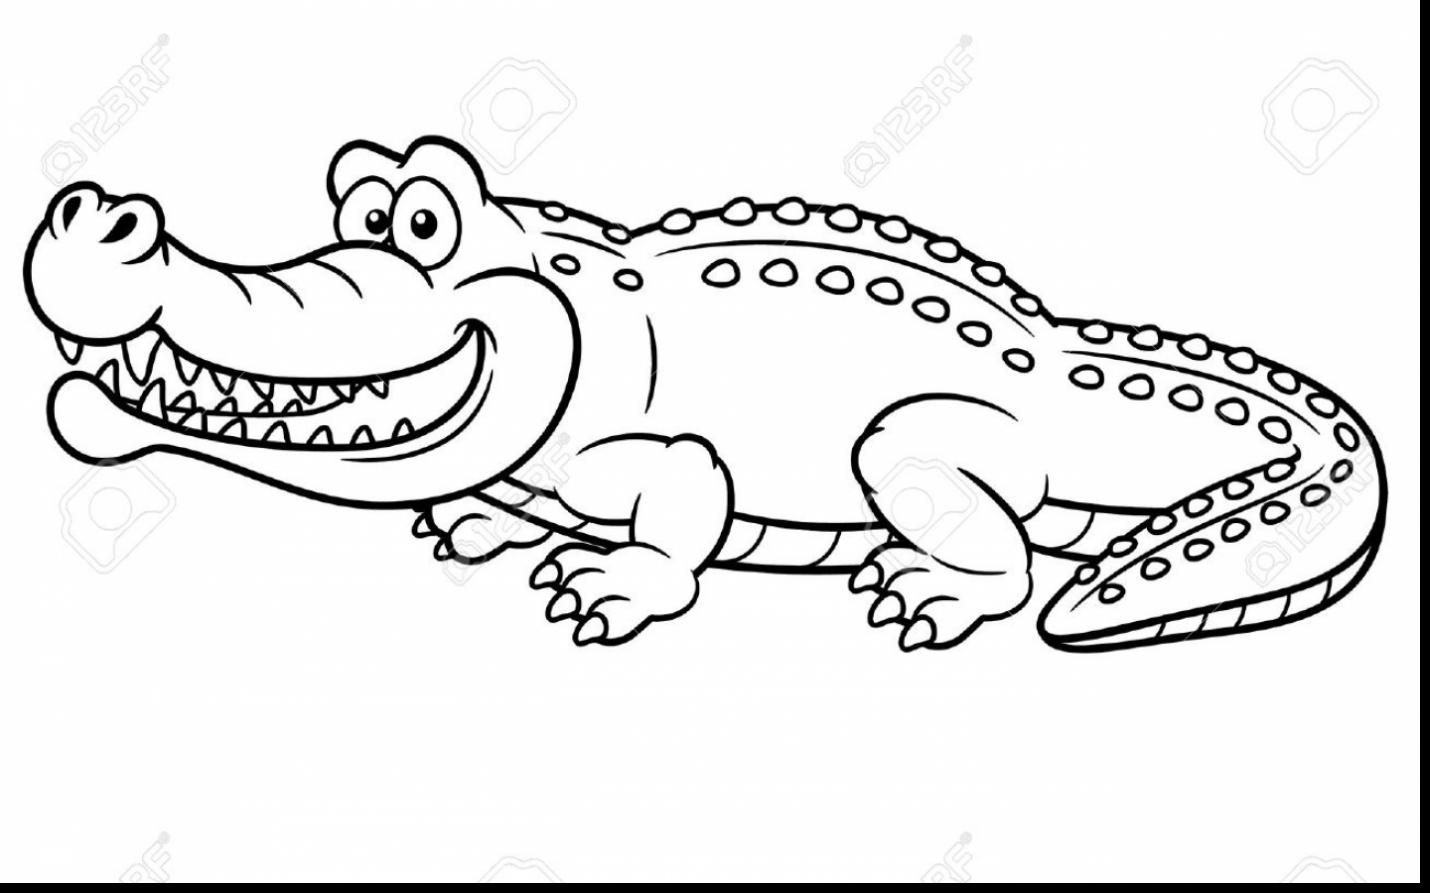 alligator coloring pages free - photo#29